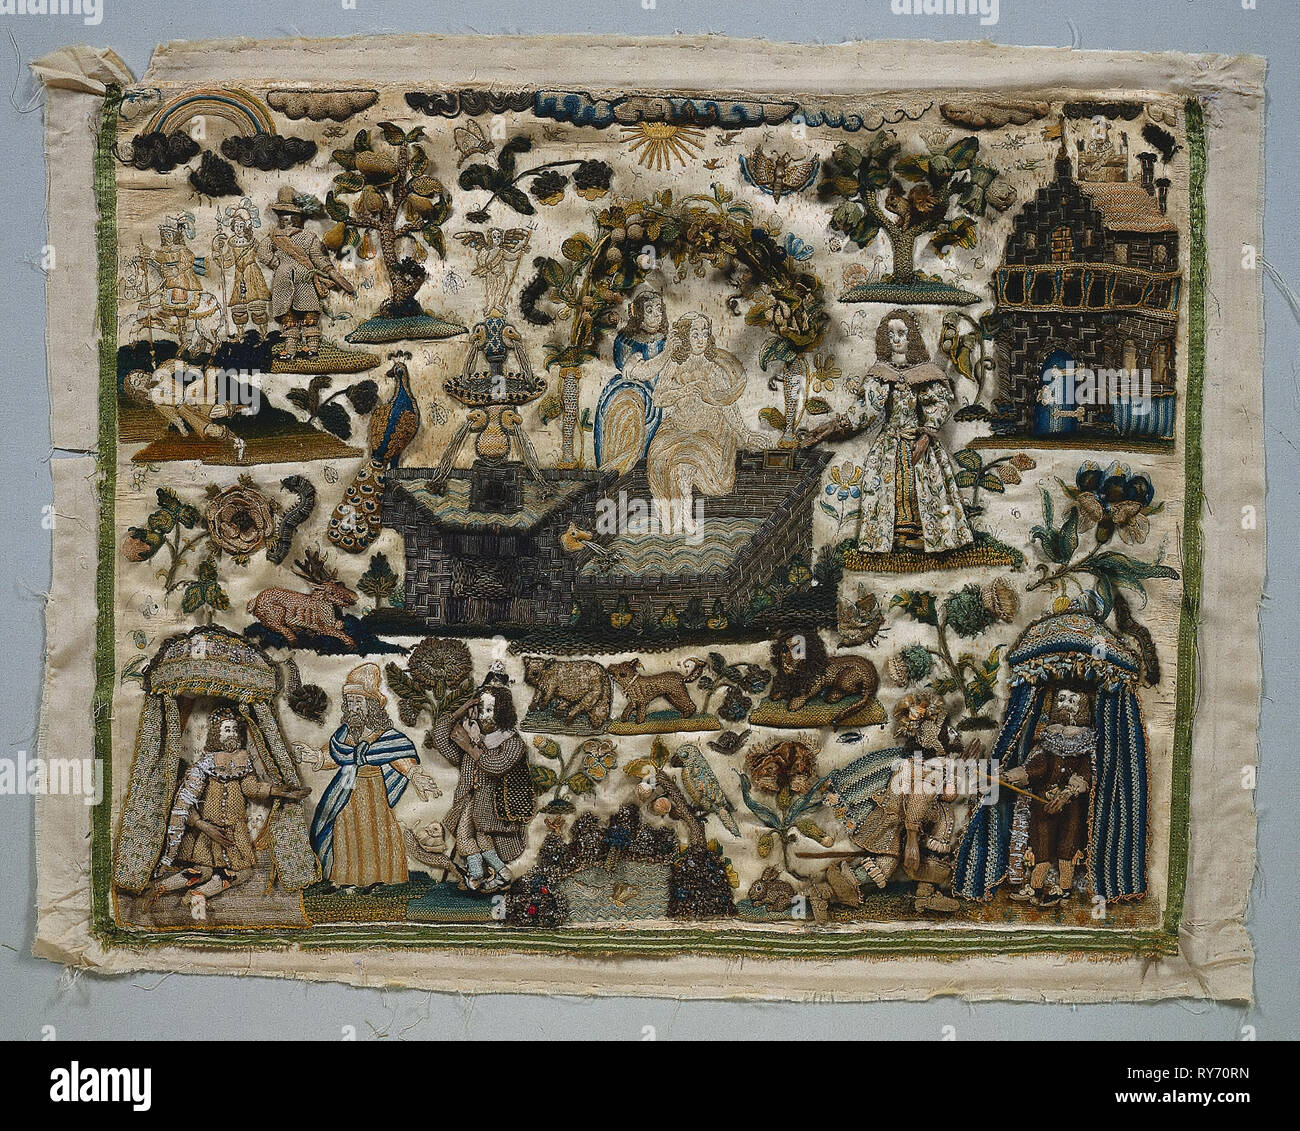 Stumpwork Panel: Story of David and Bathsheba, 1658. England, 17th century. Stumpwork embroidery with silk and metallic threads, pearls and wooden appendages; overall: 43.2 x 53.3 cm (17 x 21 in - Stock Image